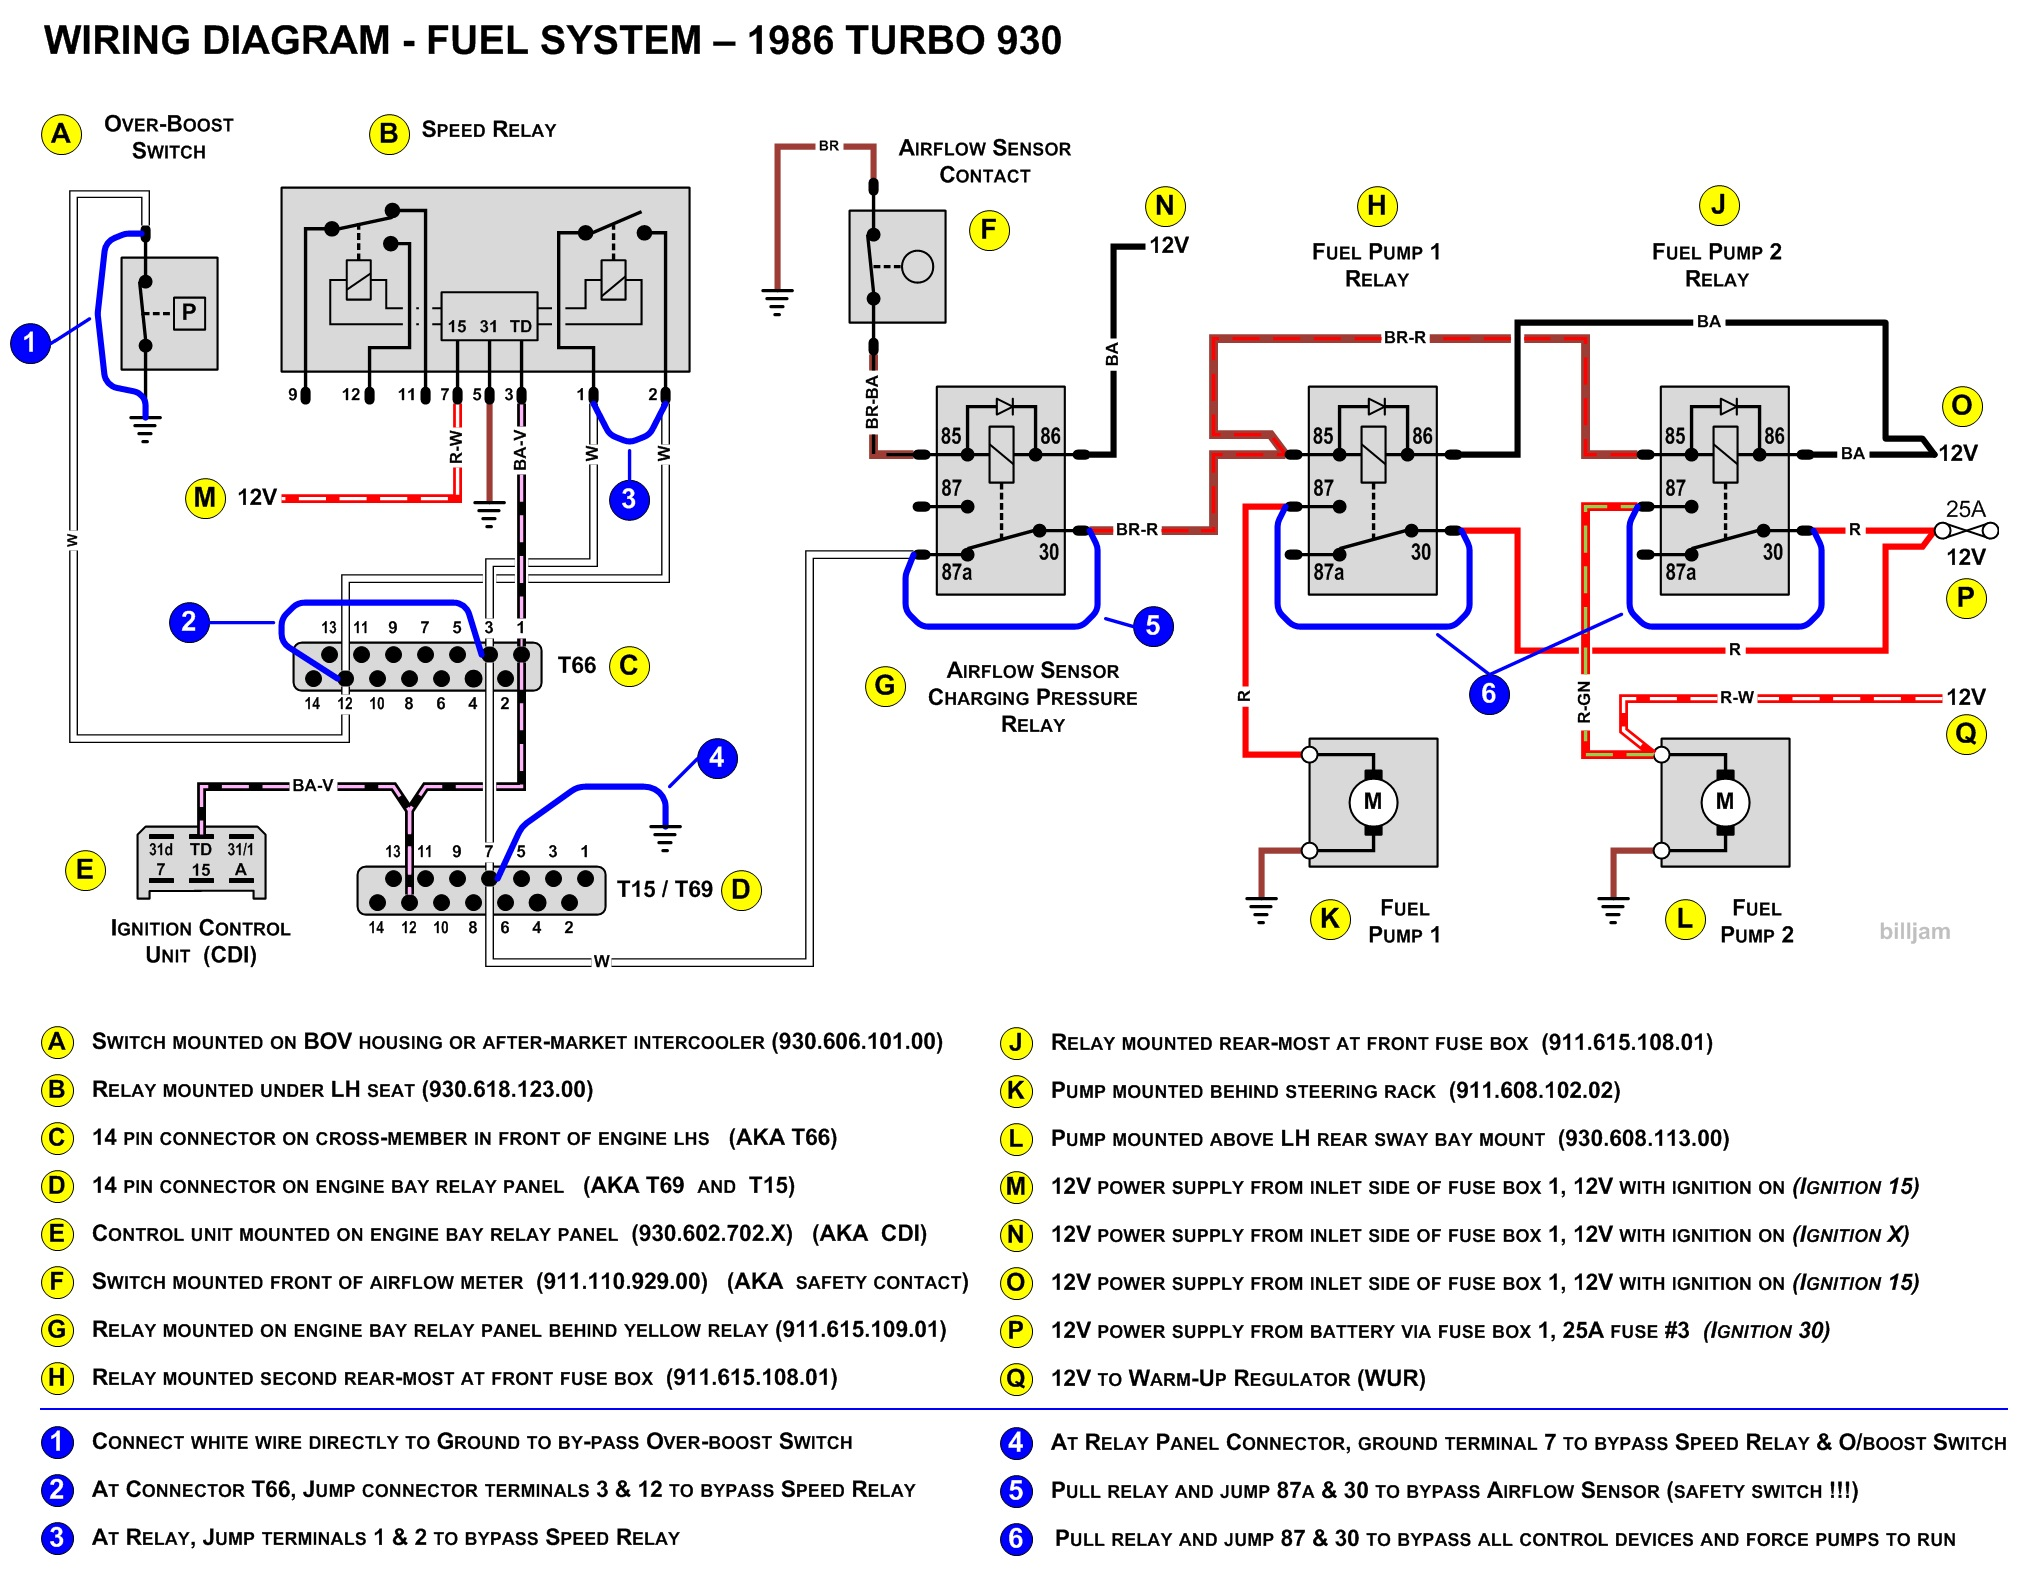 86 porsche 930 fuel system wiring diagram jumpers made a fuse box label for my 88 page 3 pelican parts technical bbs 1967 porsche 911 wiring diagram at creativeand.co